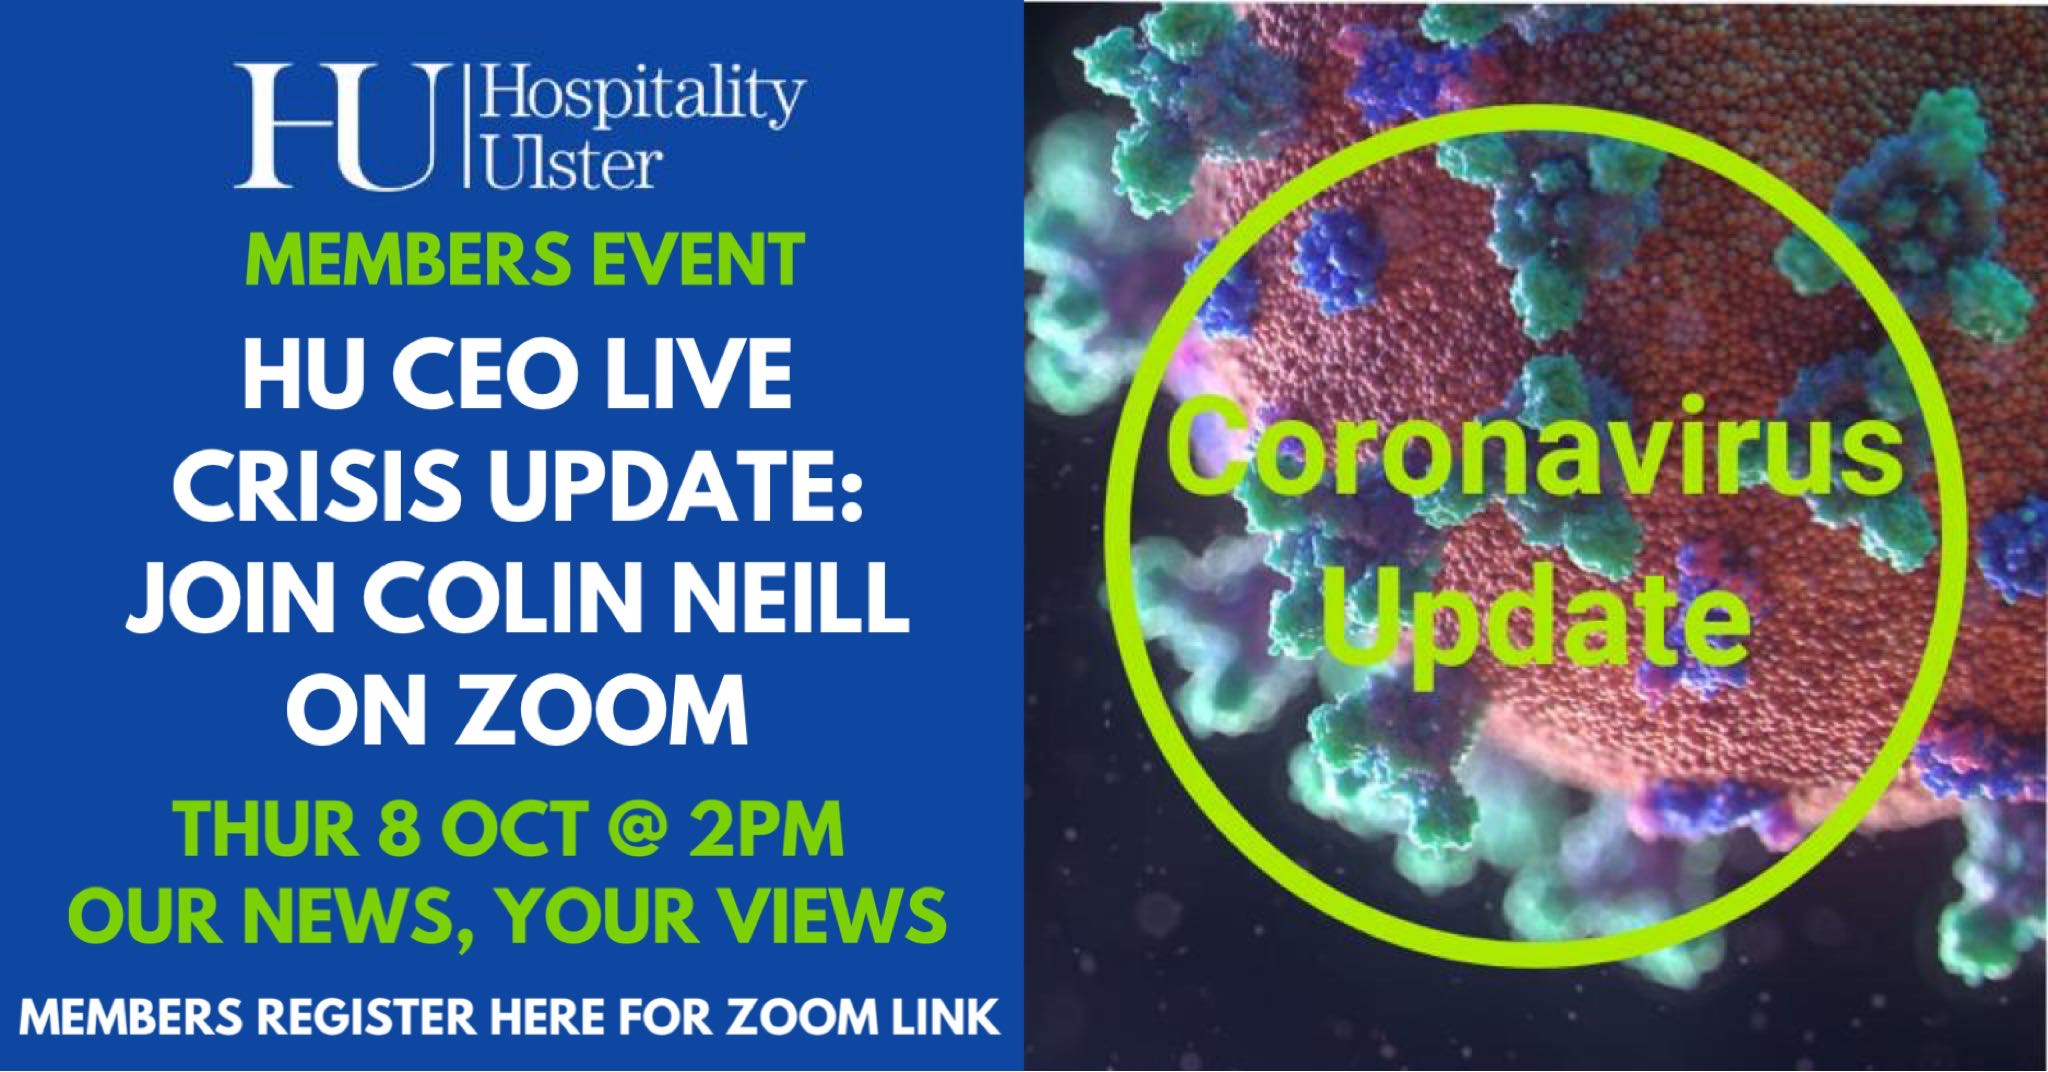 HU MEMBERS ZOOM WITH CEO COLIN NEILL ON THURSDAY 8TH OCT